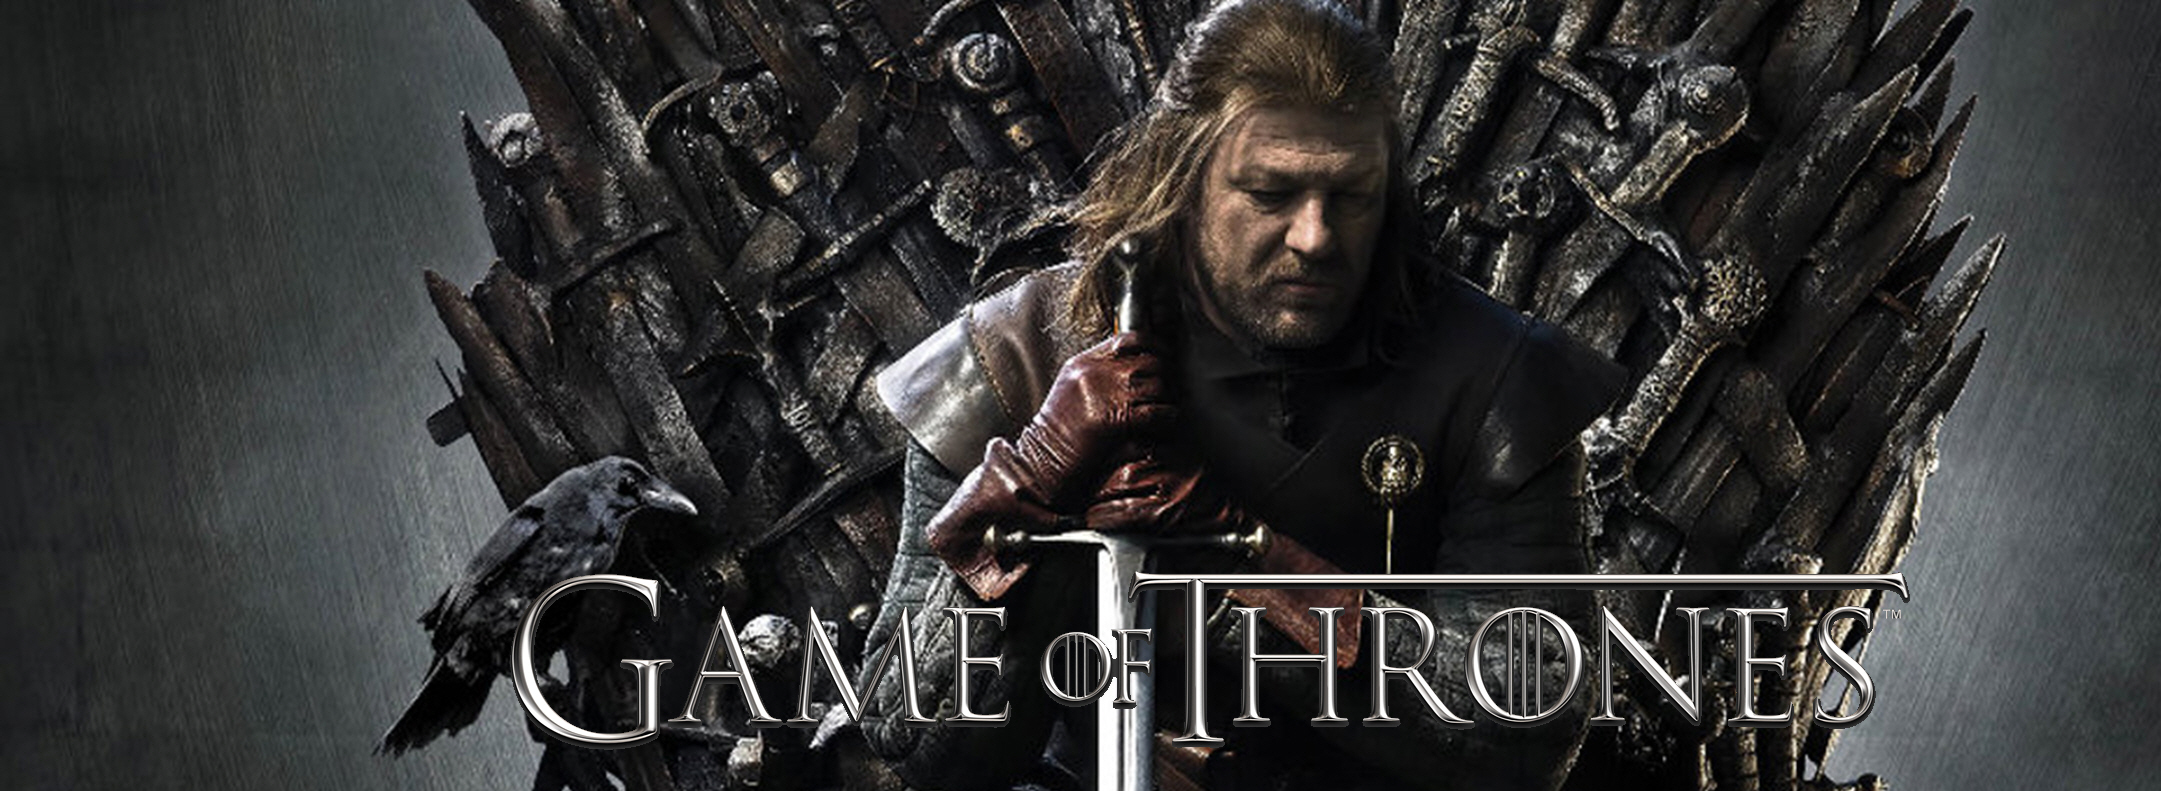 game of thrones negative reviews